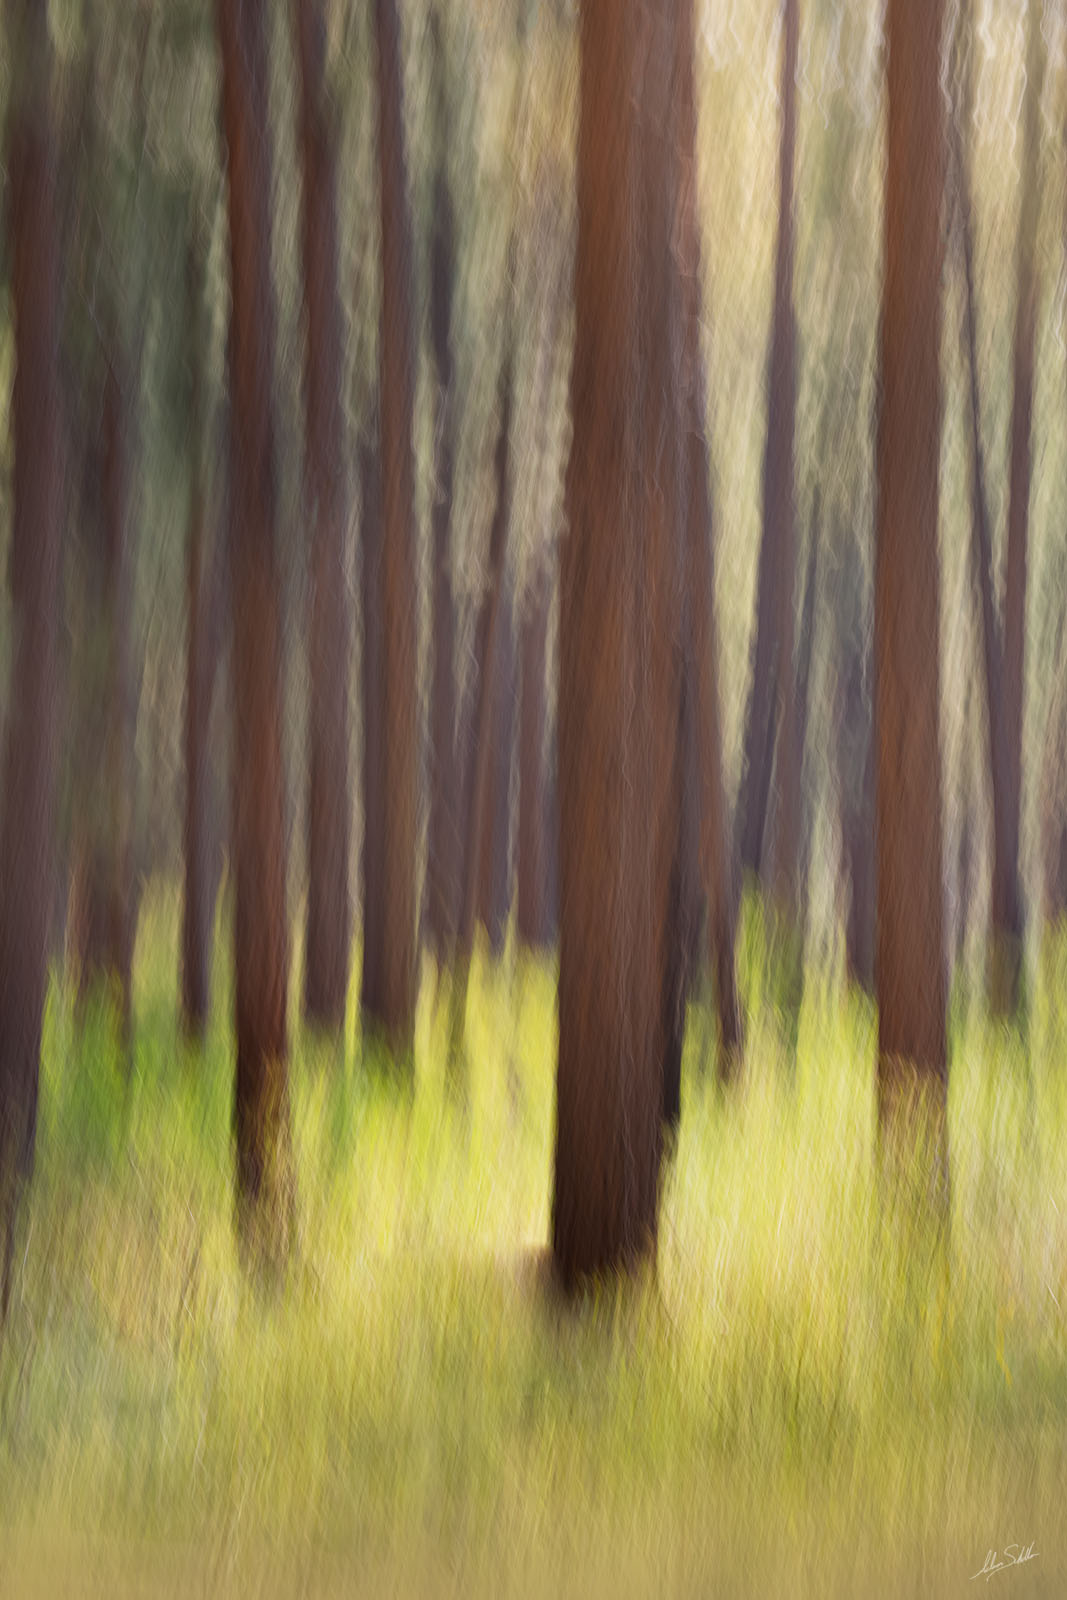 I used a long exposure to create this impressionistic interpretation of the forests of the Point Sublime section on the North...